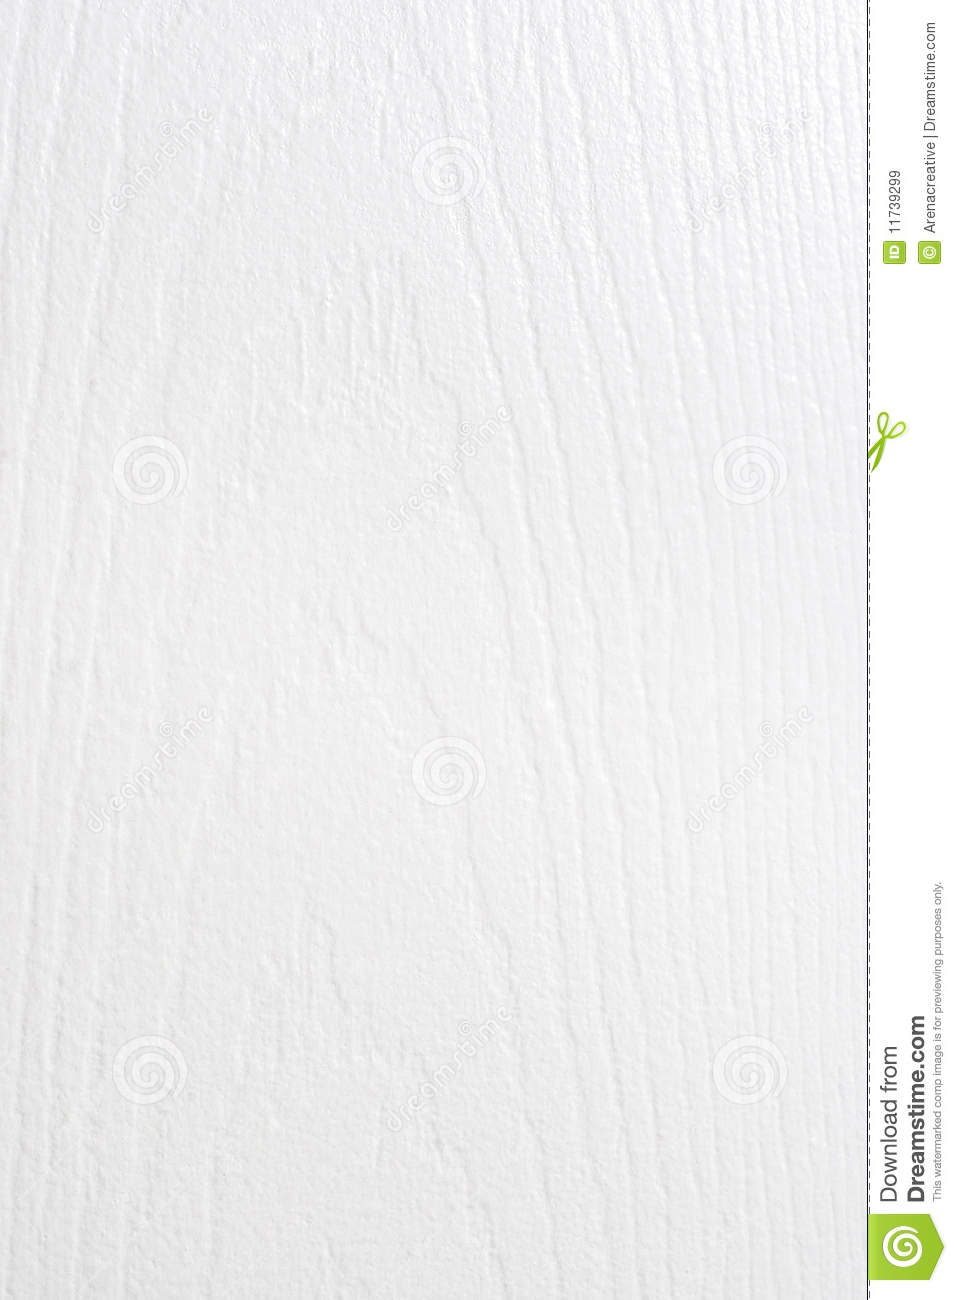 White Painted Wood Royalty Free Stock Images - Image: 11739299